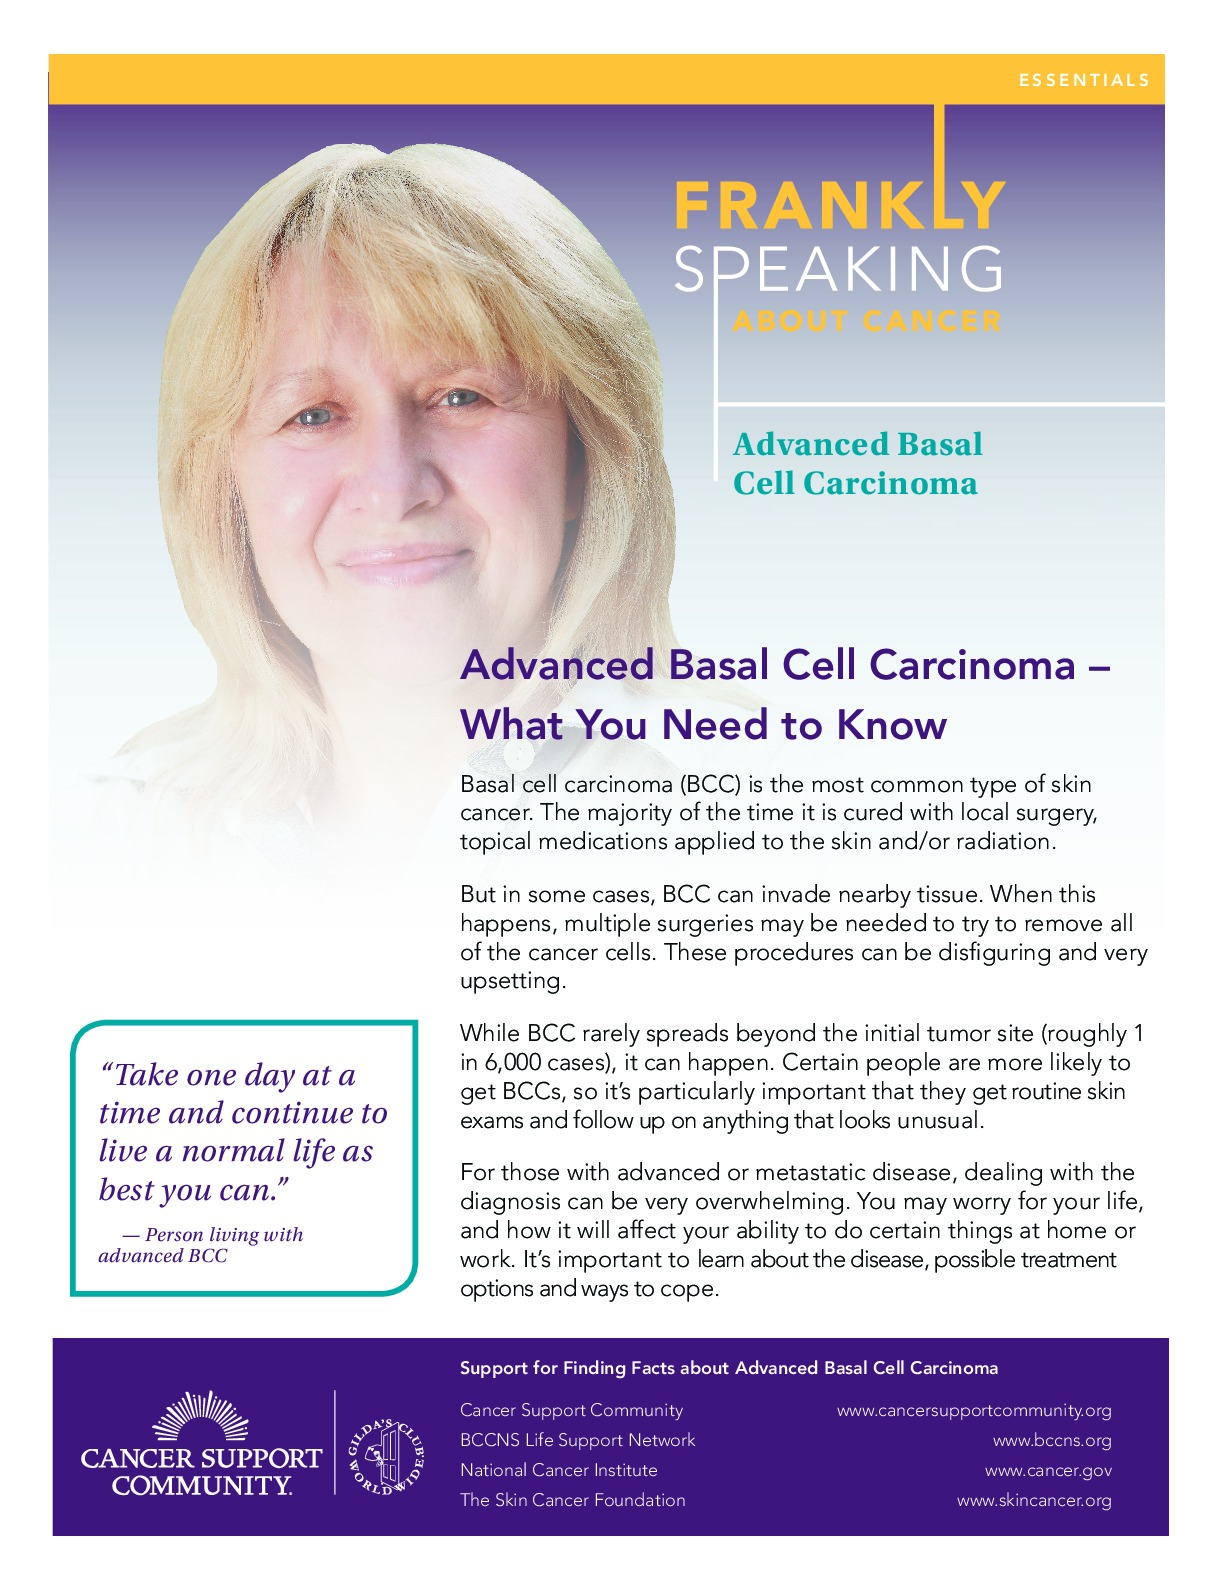 Frankly Speaking About Cancer: Metastatic Basal Cell Carcinoma